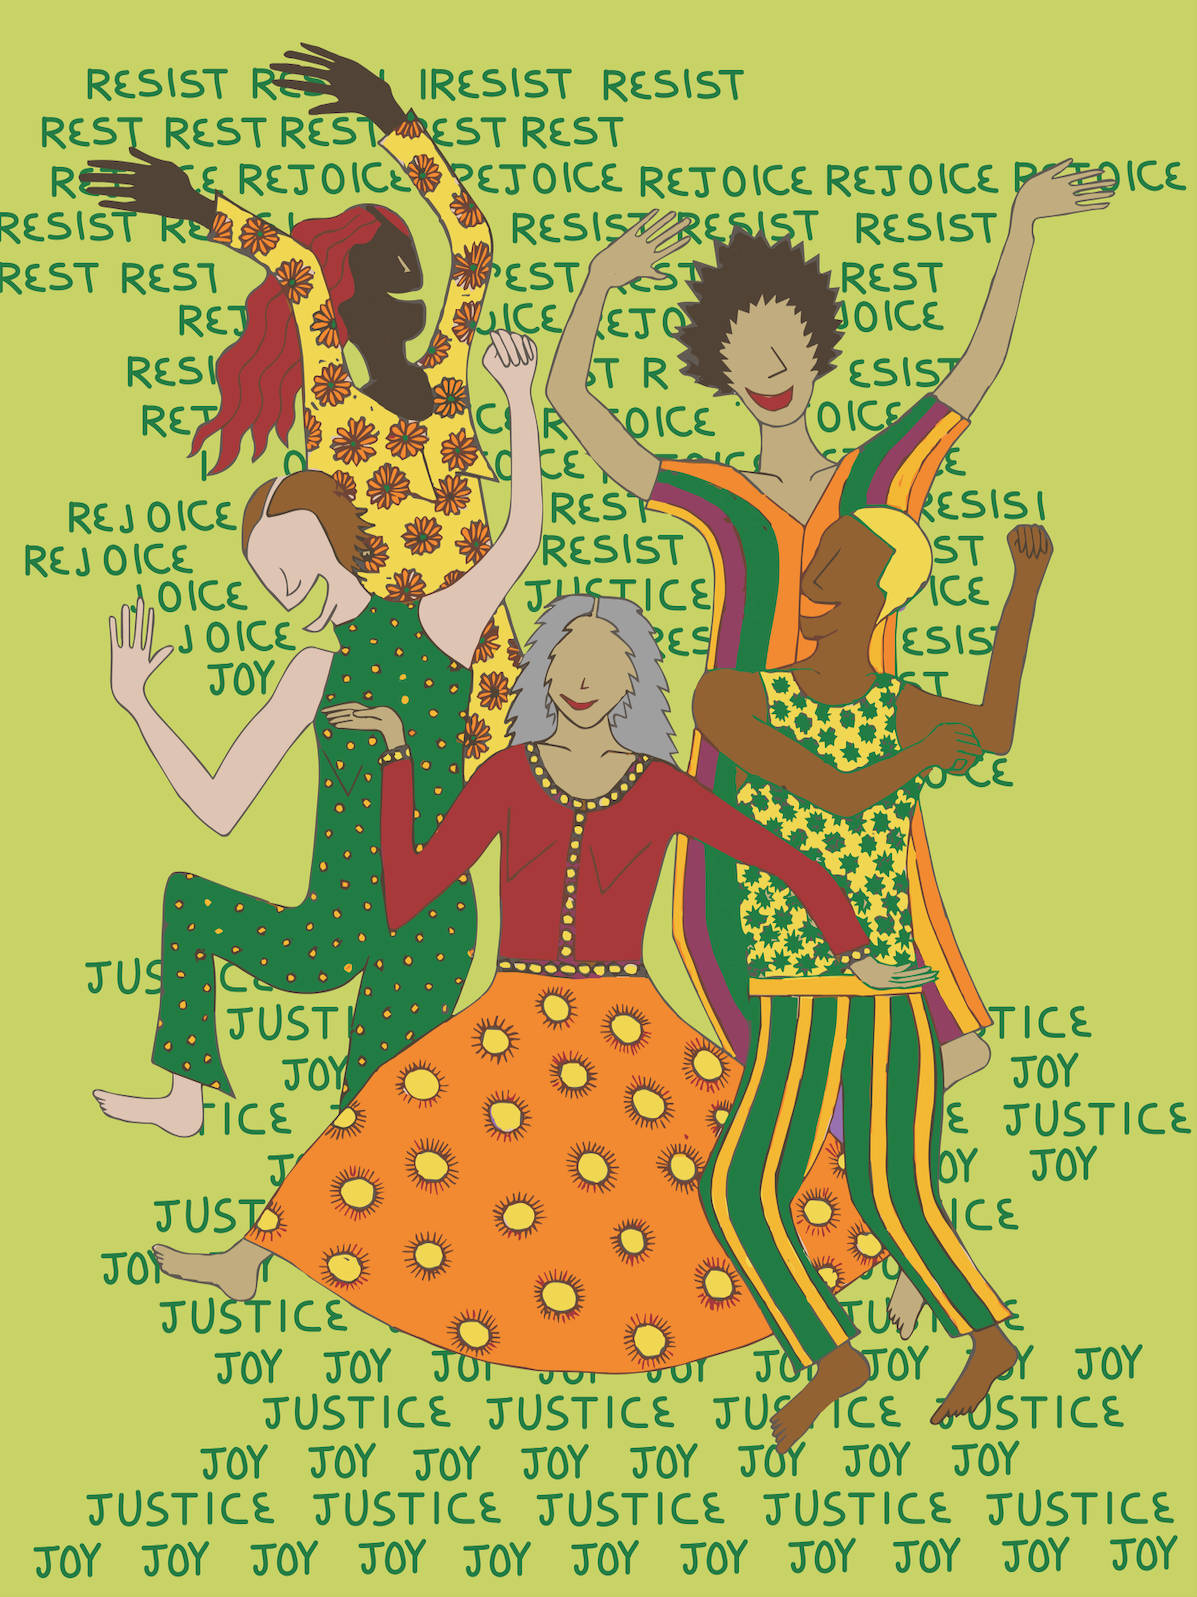 Five figures with dark to light skin tones and brightly patterned clothes dance in the center. They are surrounded by words that repeat in the background: Rest, Resist, Rejoice, Joy, Justice.